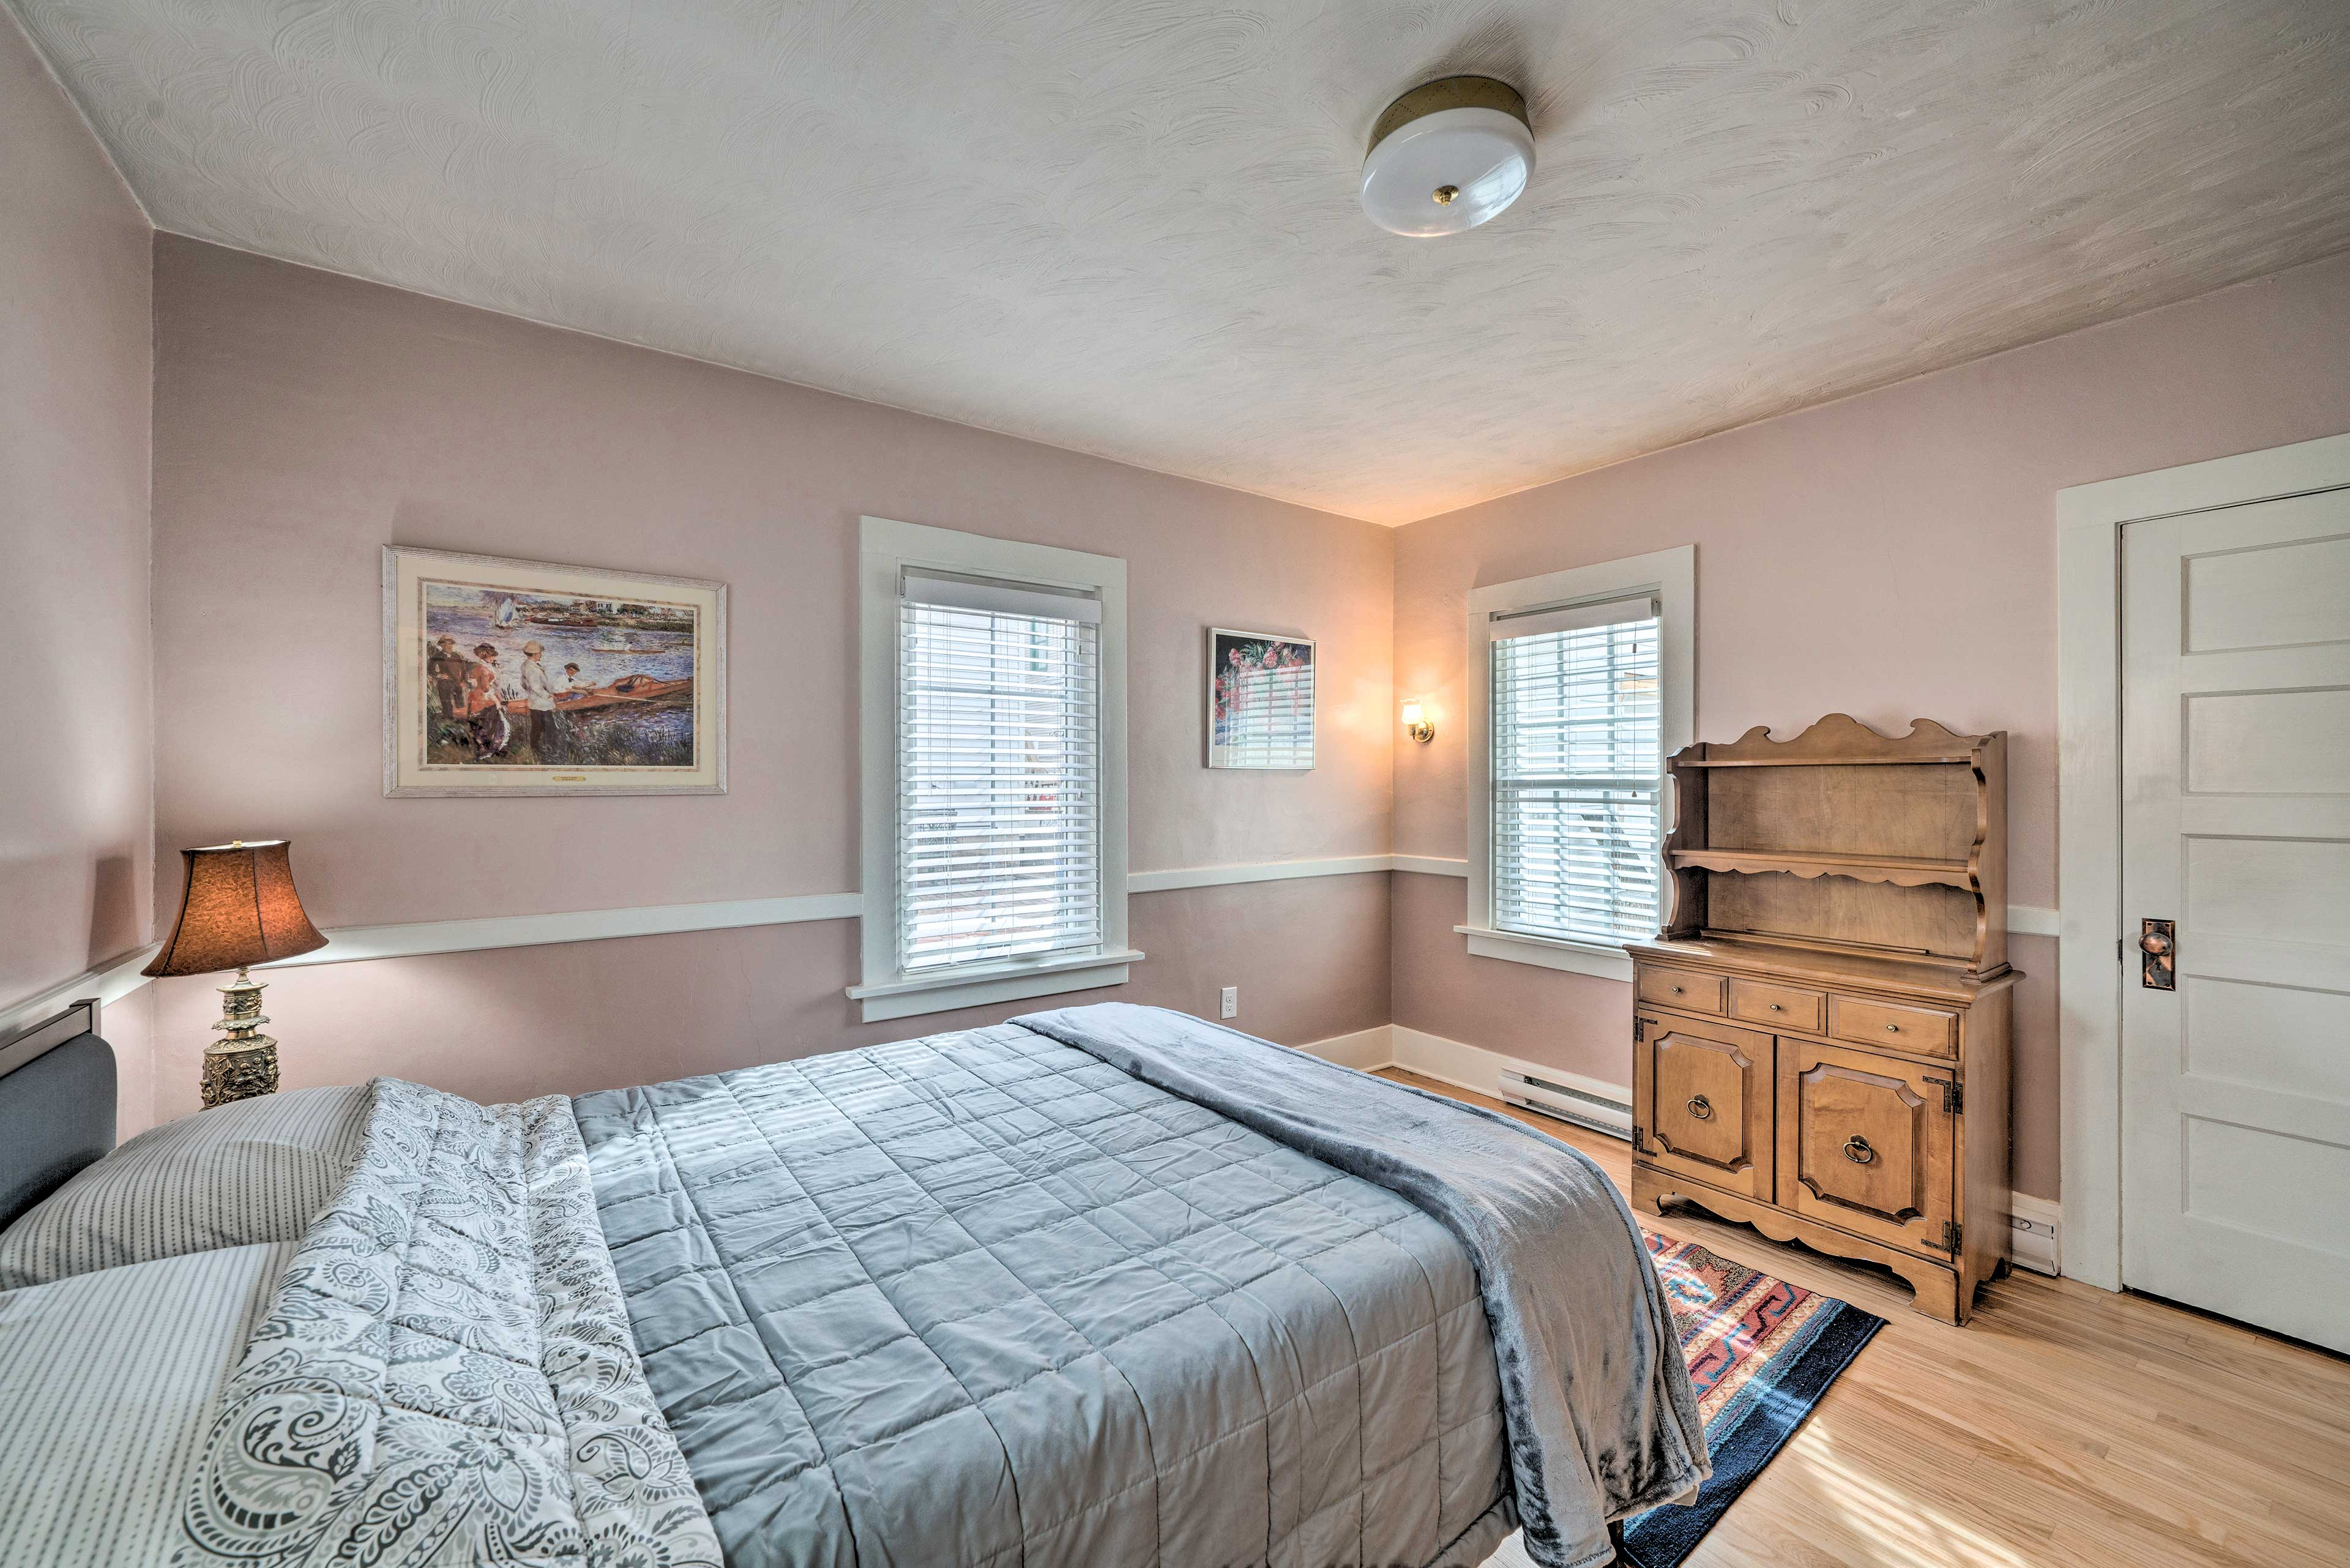 This peaceful bedroom invites you to relax and rejuvenate when the day is over.